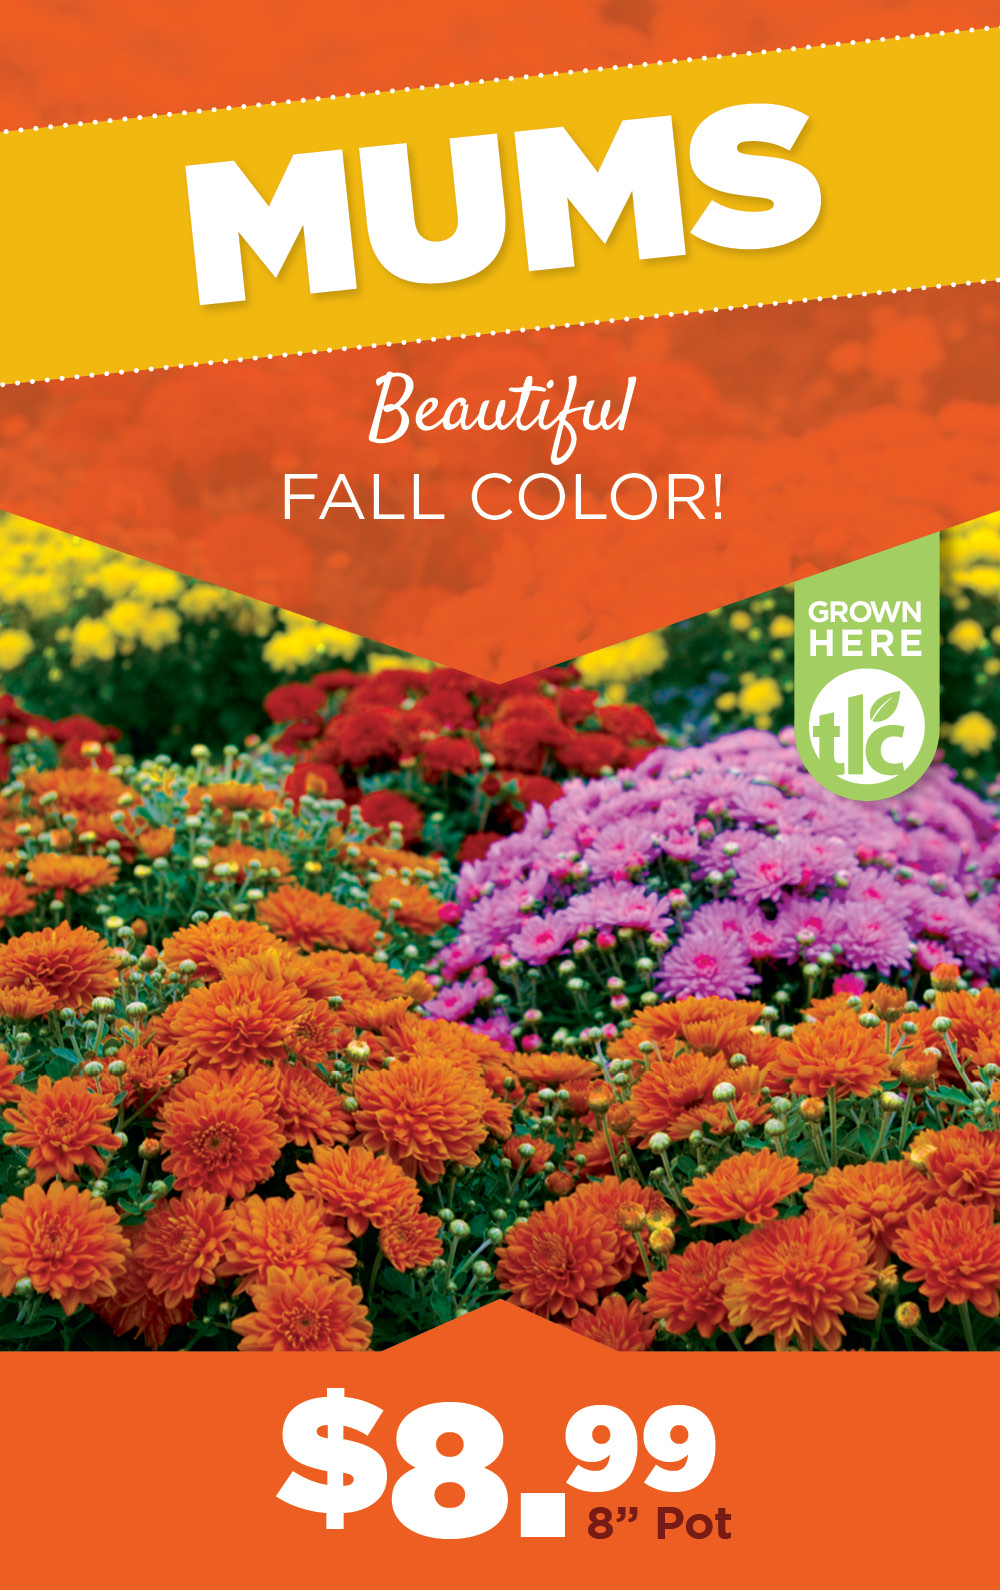 Mums, Asters, Cabbage | TLC Garden Center